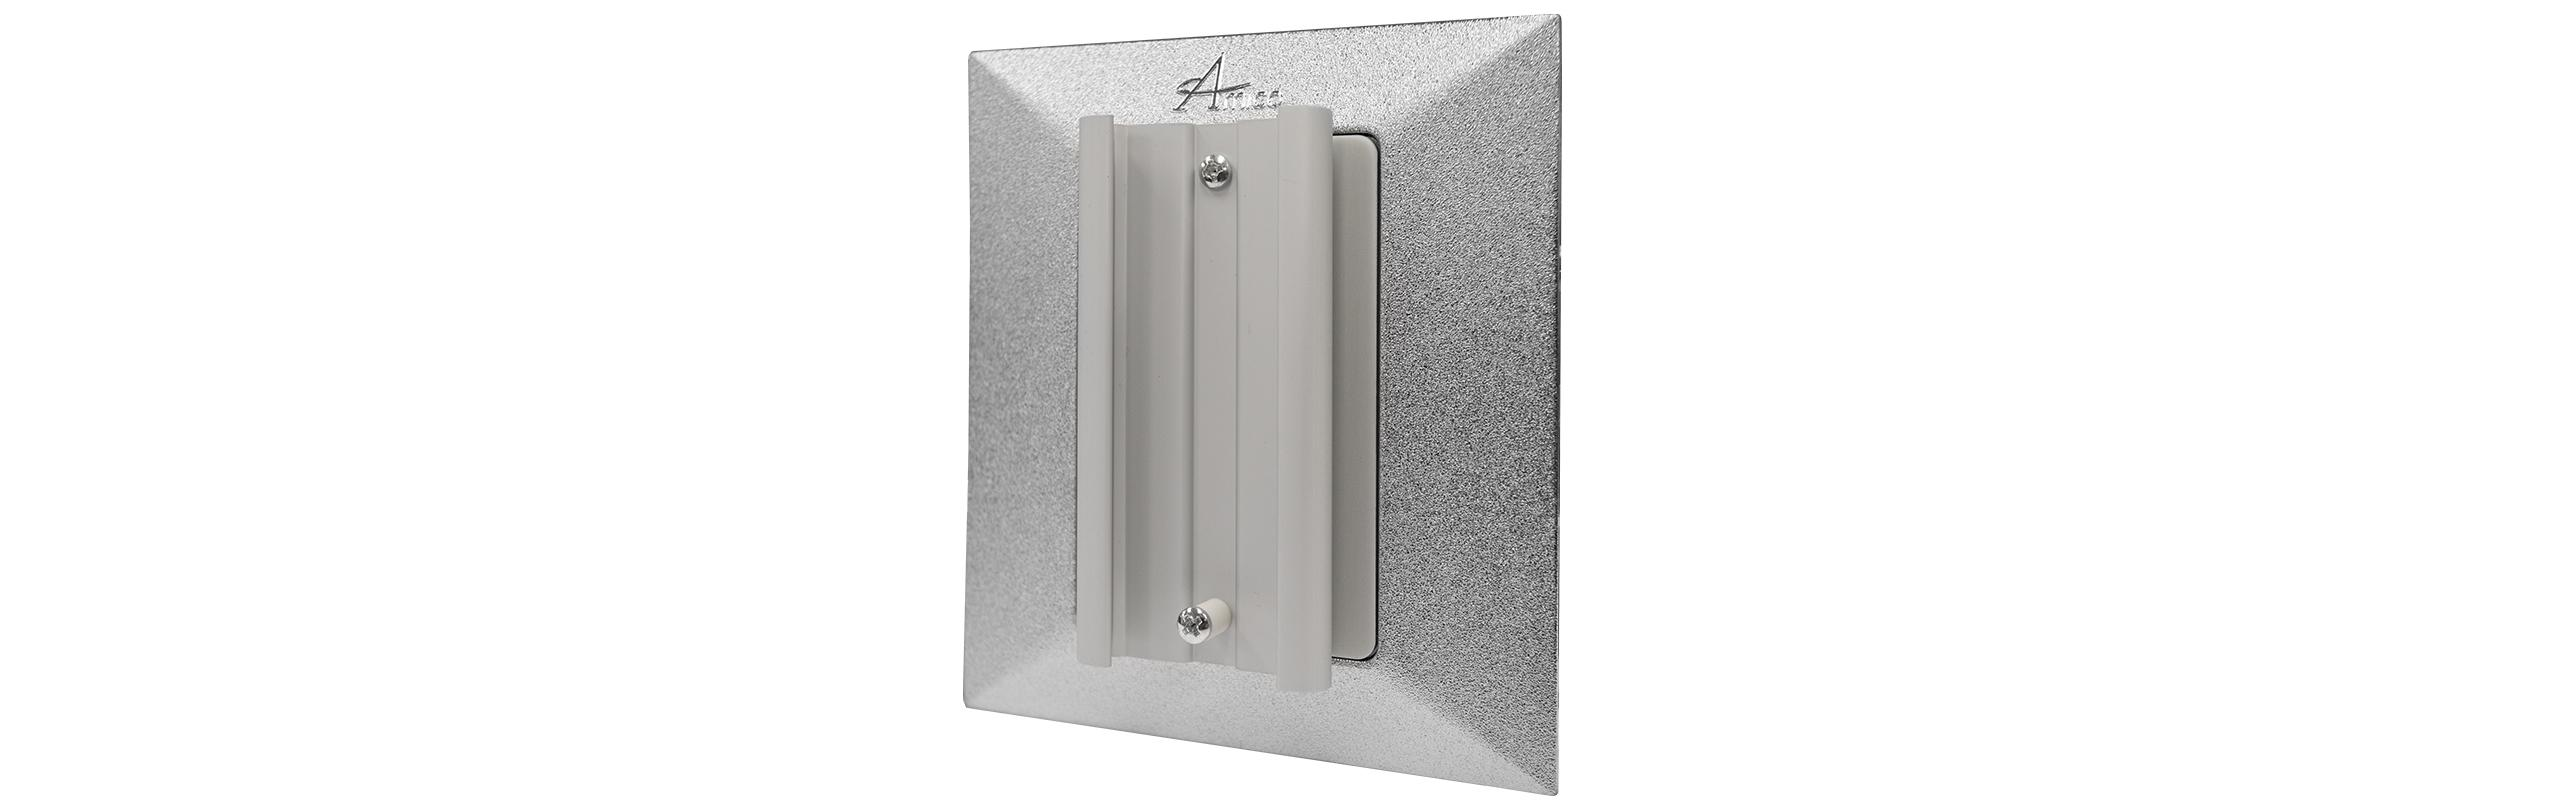 Slide bracket wall and console outlet accessory amico for Slide design outlet